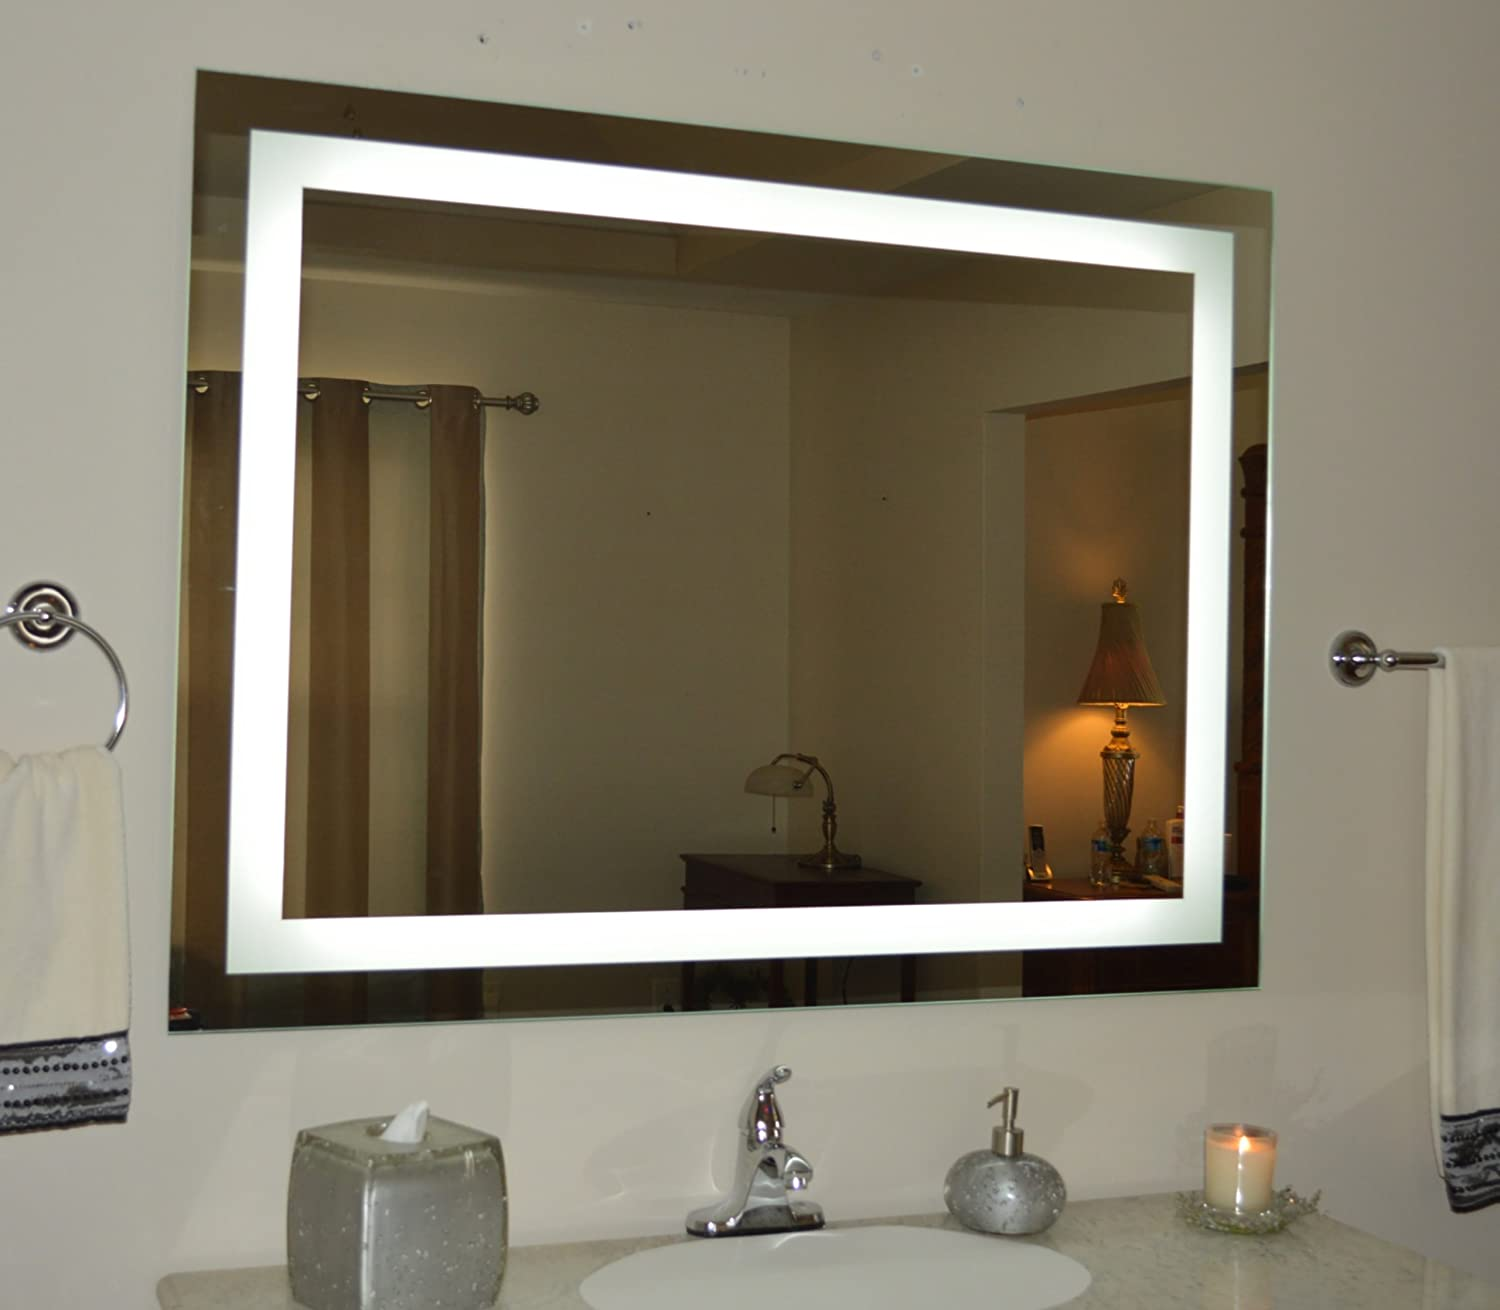 Amazon wall mounted lighted vanity mirror led mam84836 amazon wall mounted lighted vanity mirror led mam84836 commercial grade 48 home kitchen mozeypictures Image collections